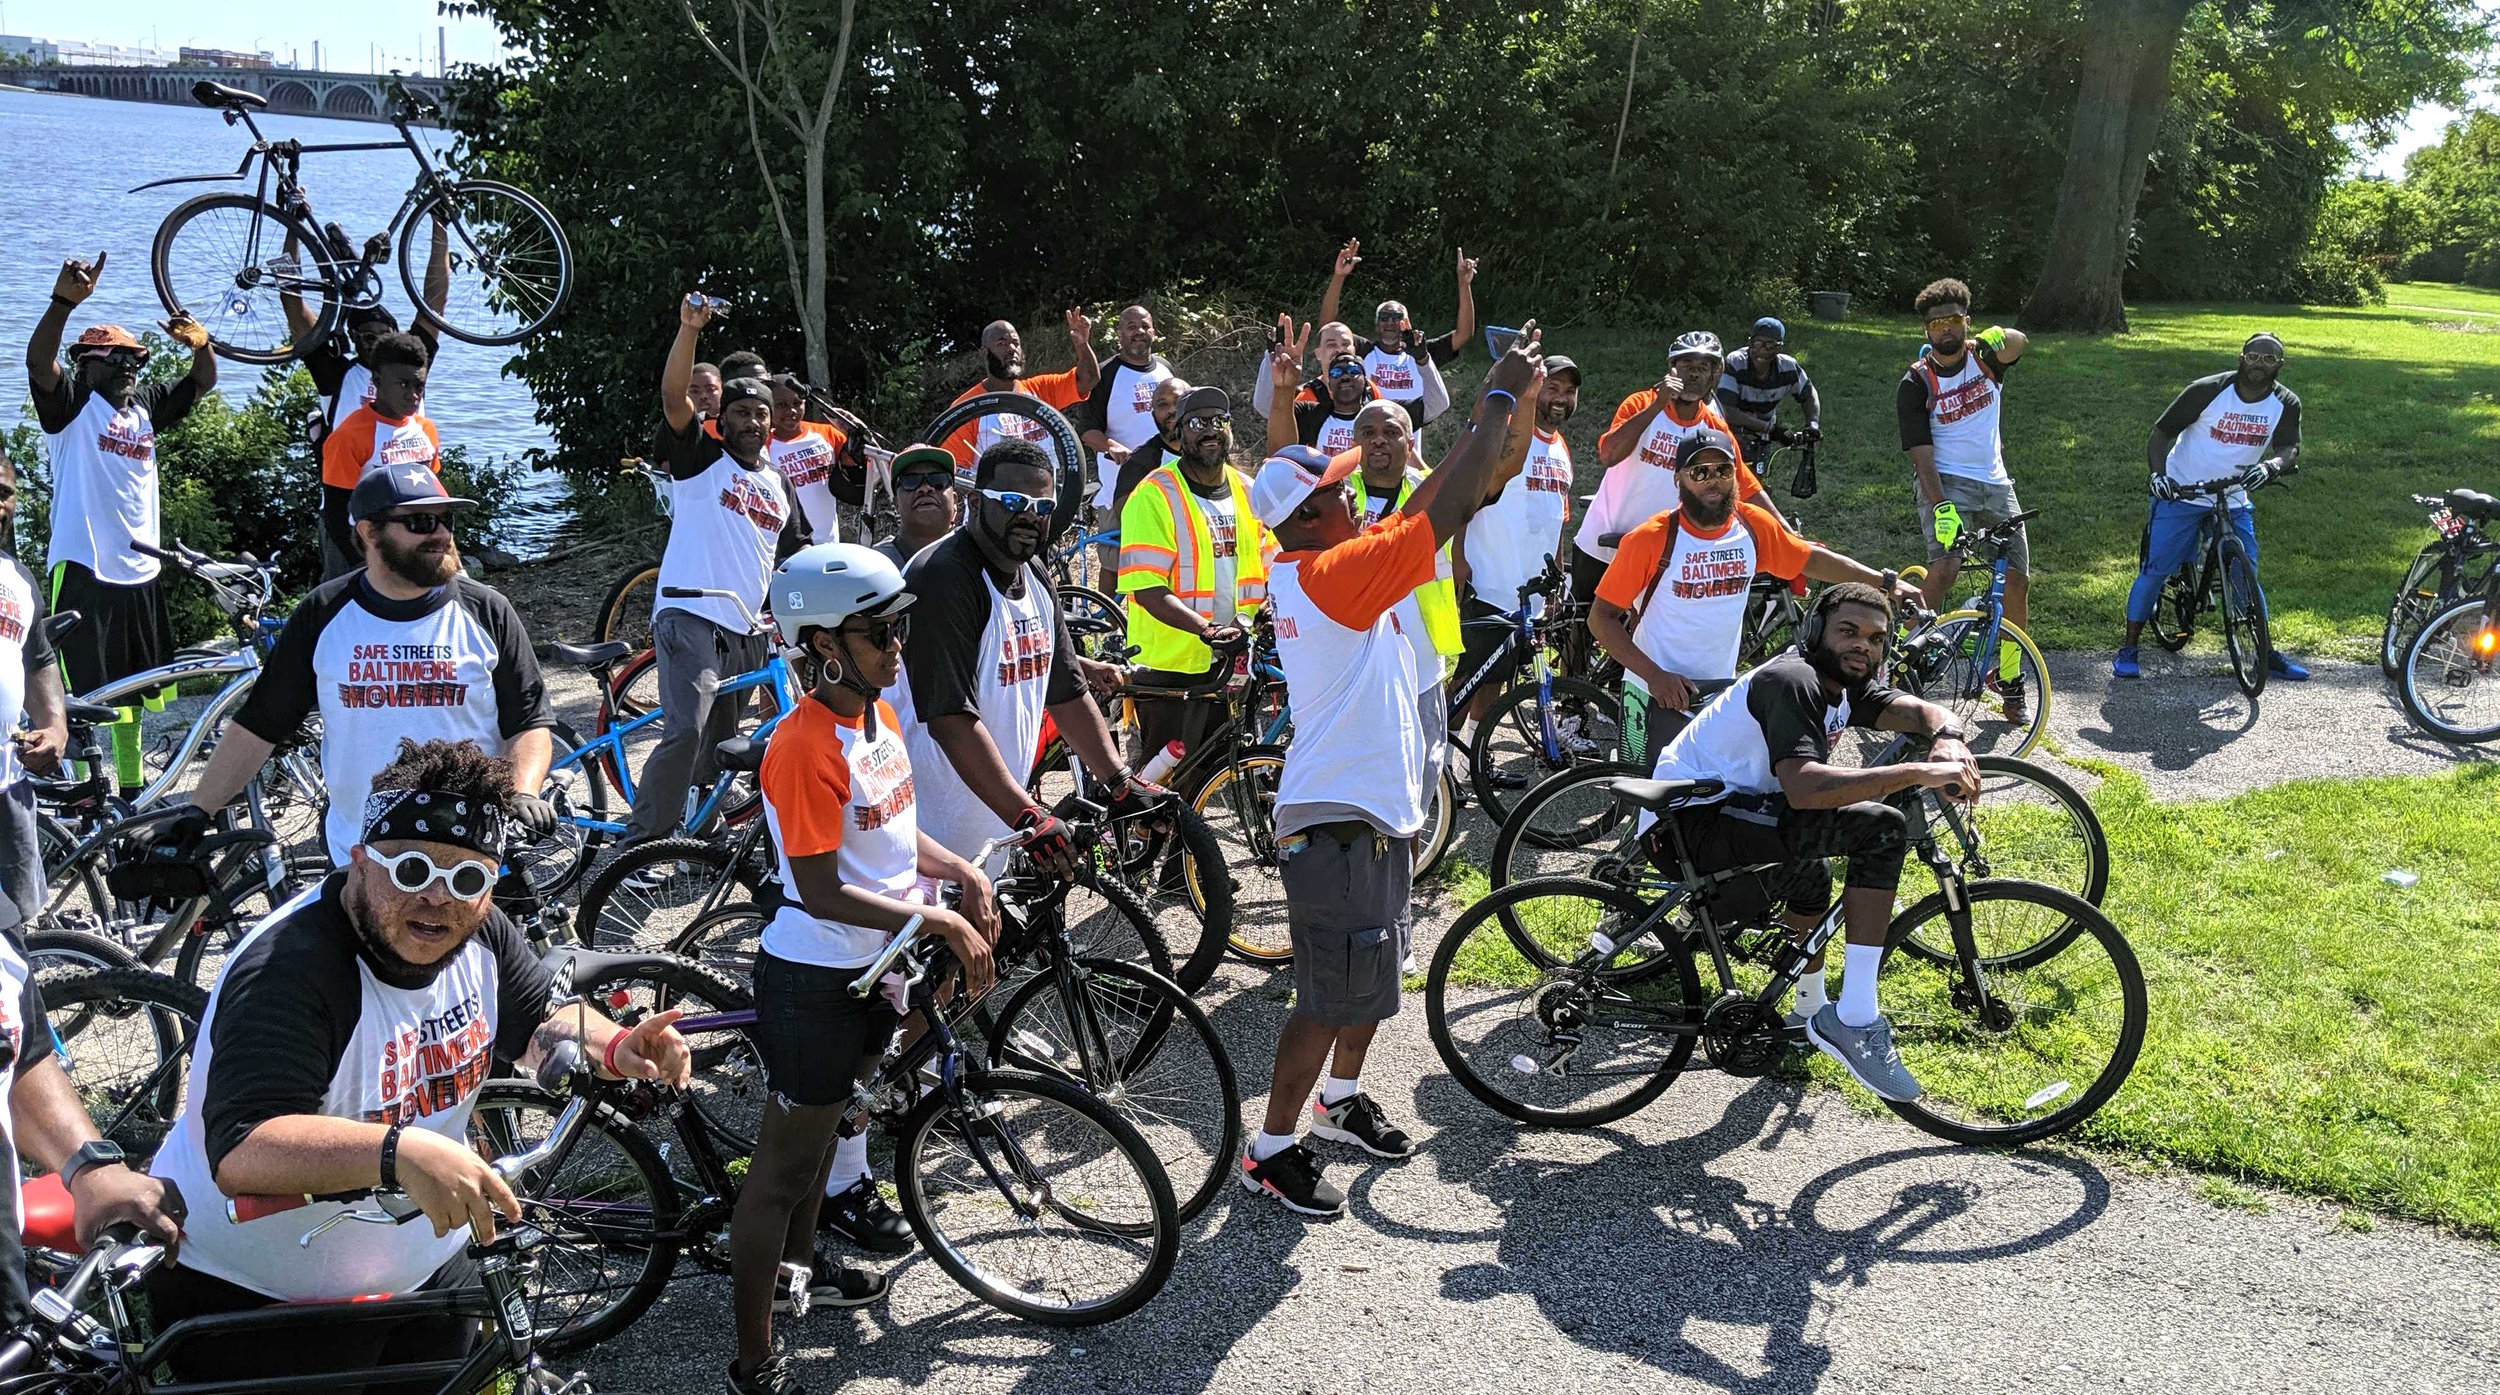 Last weekend we rode with neighbors at the Pedal-a-thon in Cherry Hill